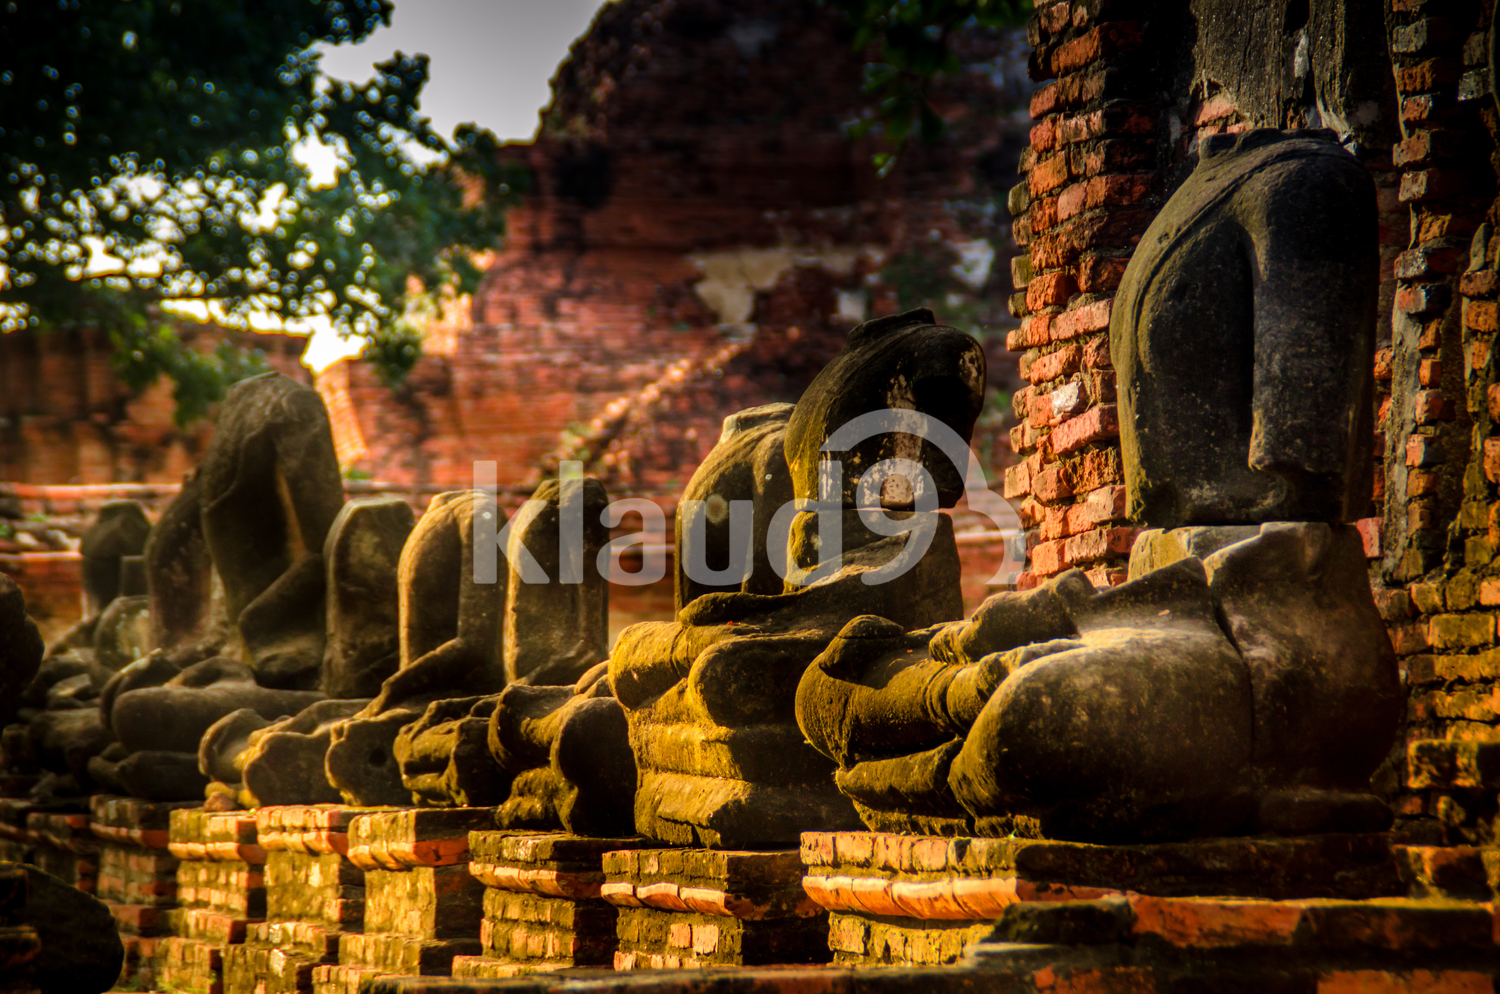 Imperfect buddha statues in Wat Mahathat, Ayutthaya Historical Park Siam